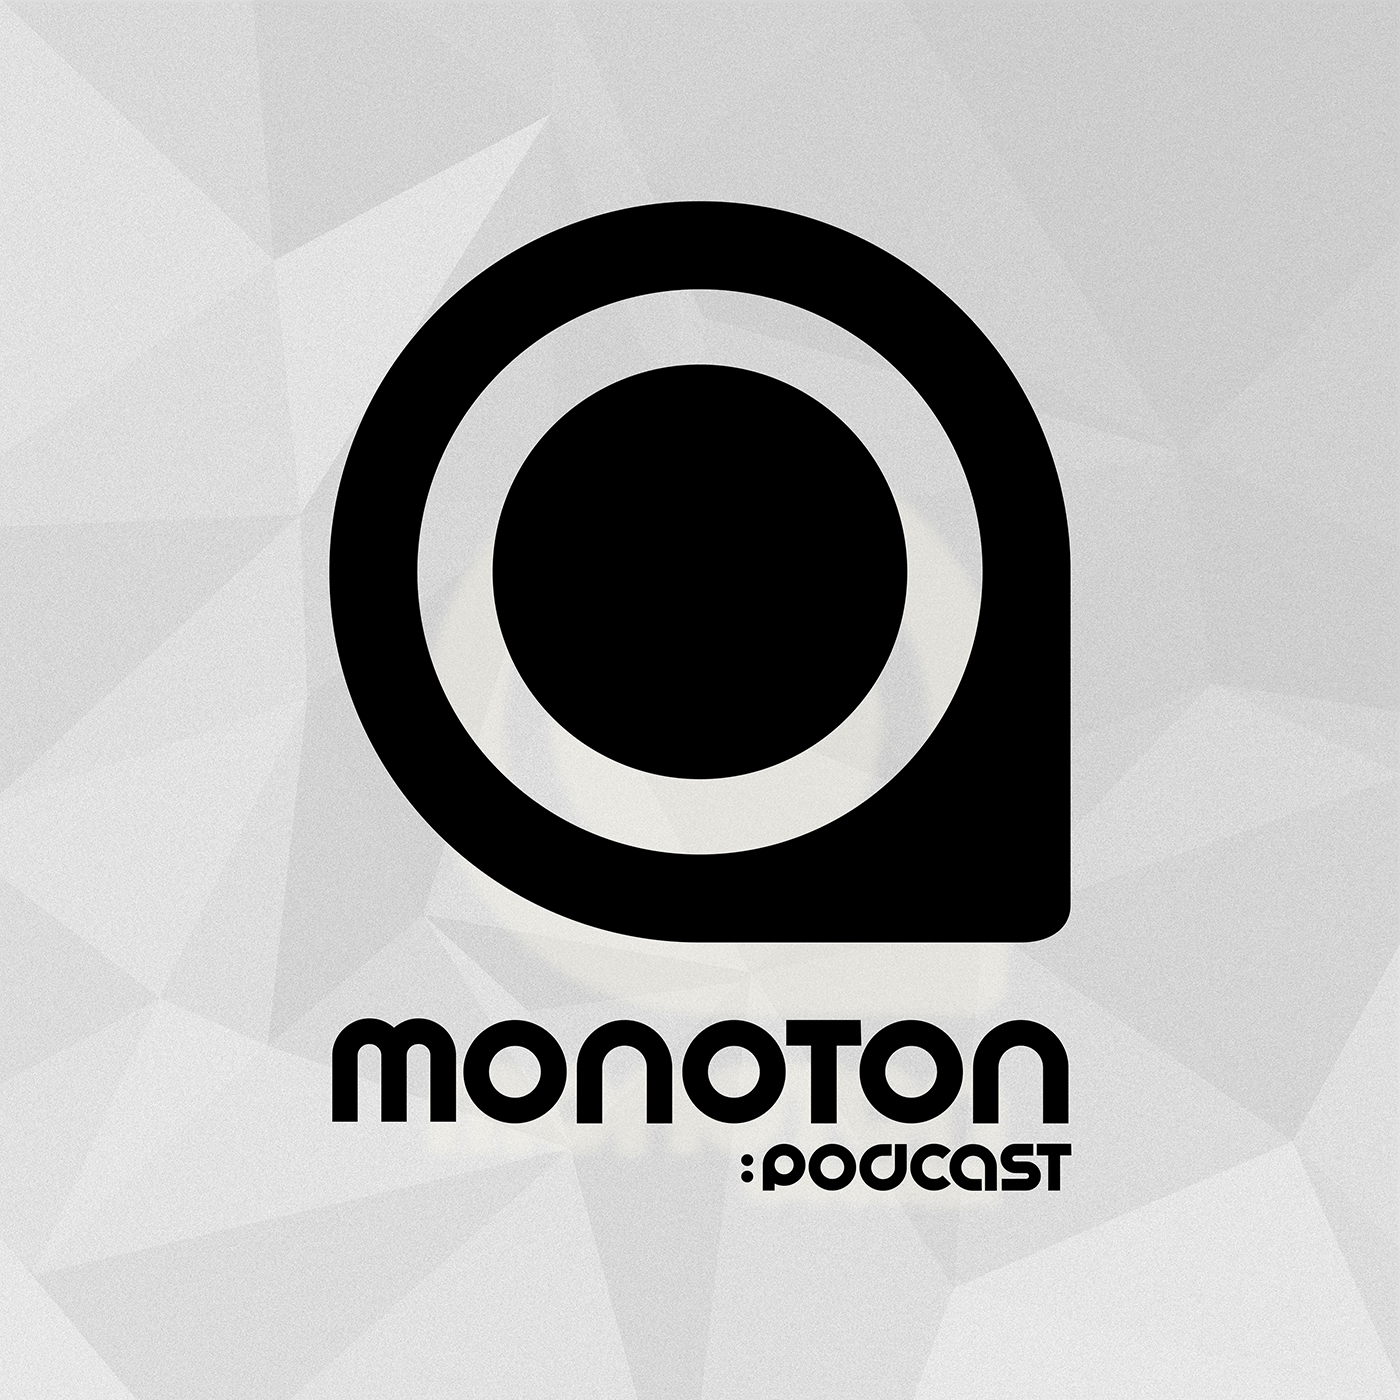 MONOTON:audio Podcast